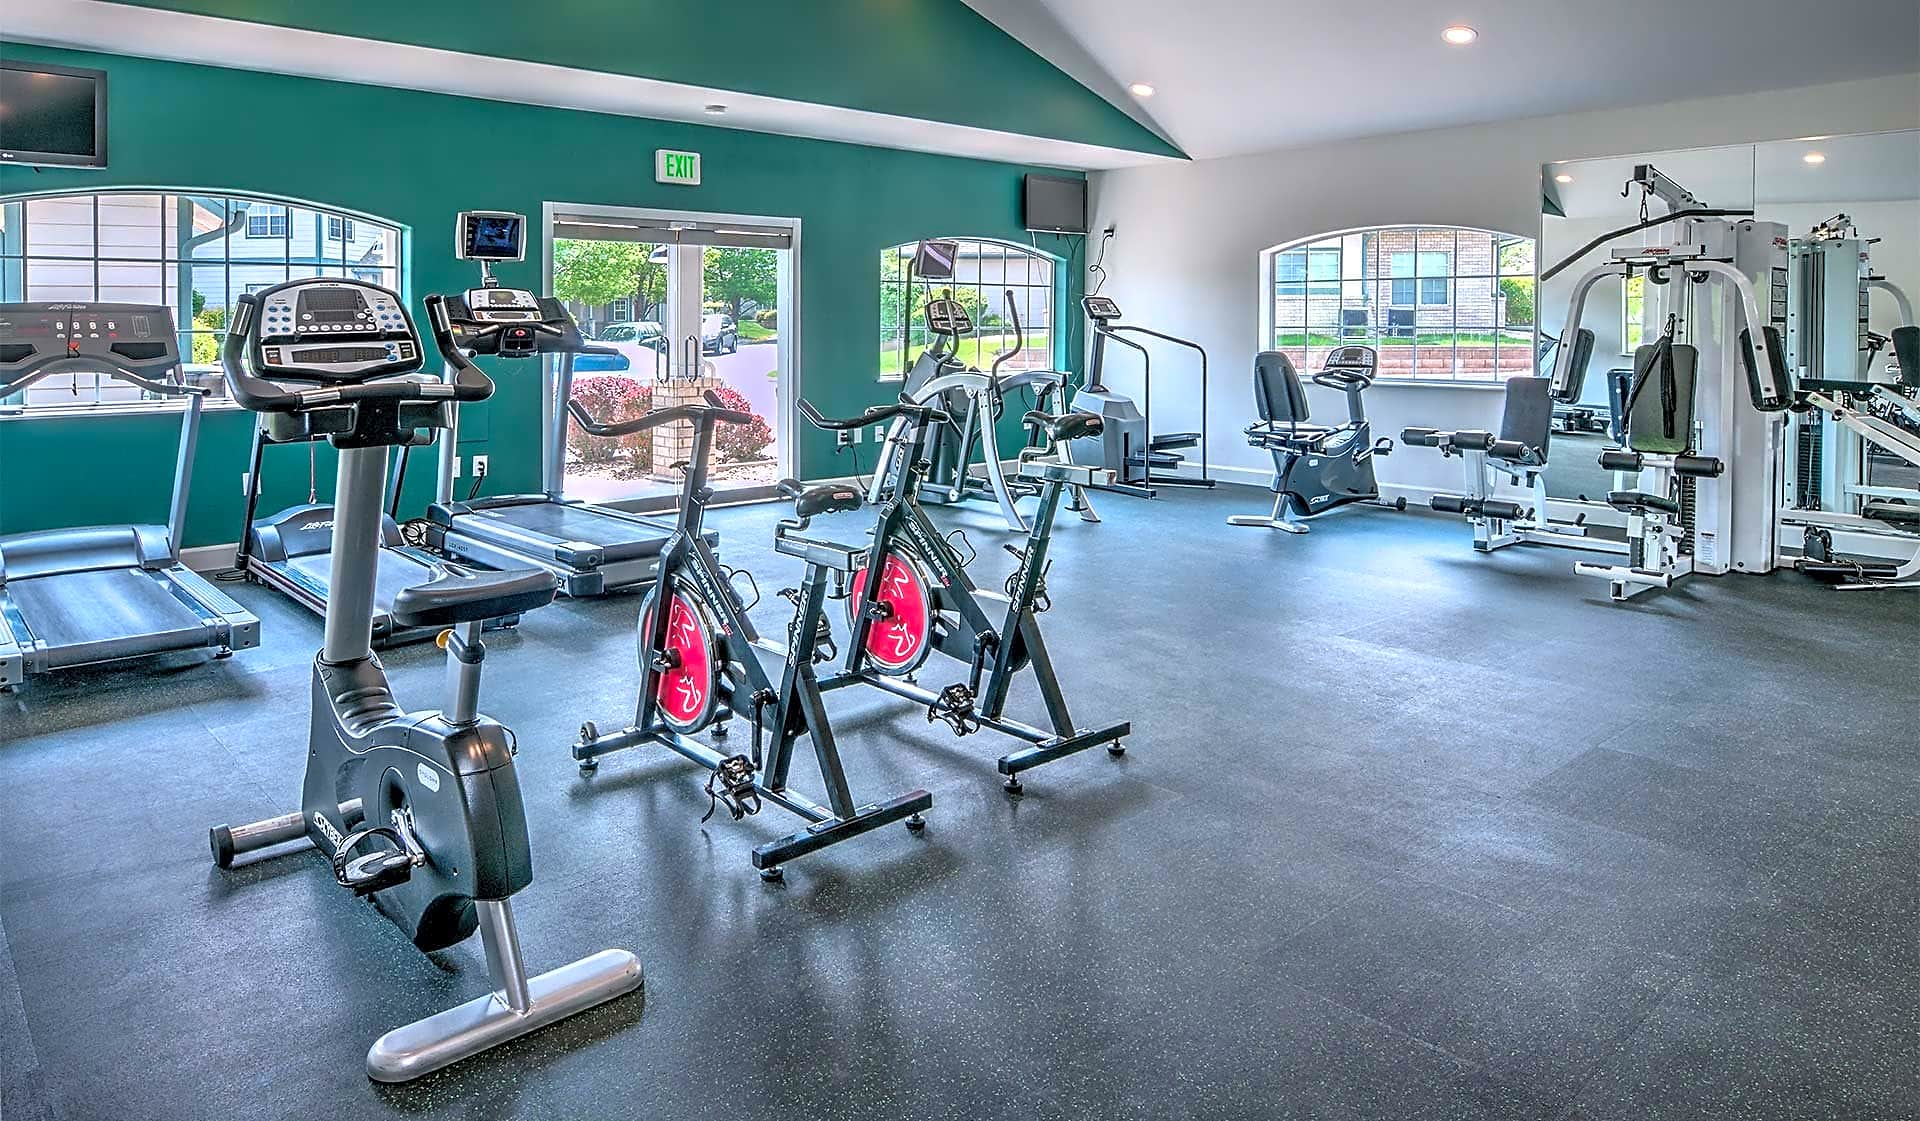 Exercise at our 24-hour fitness center